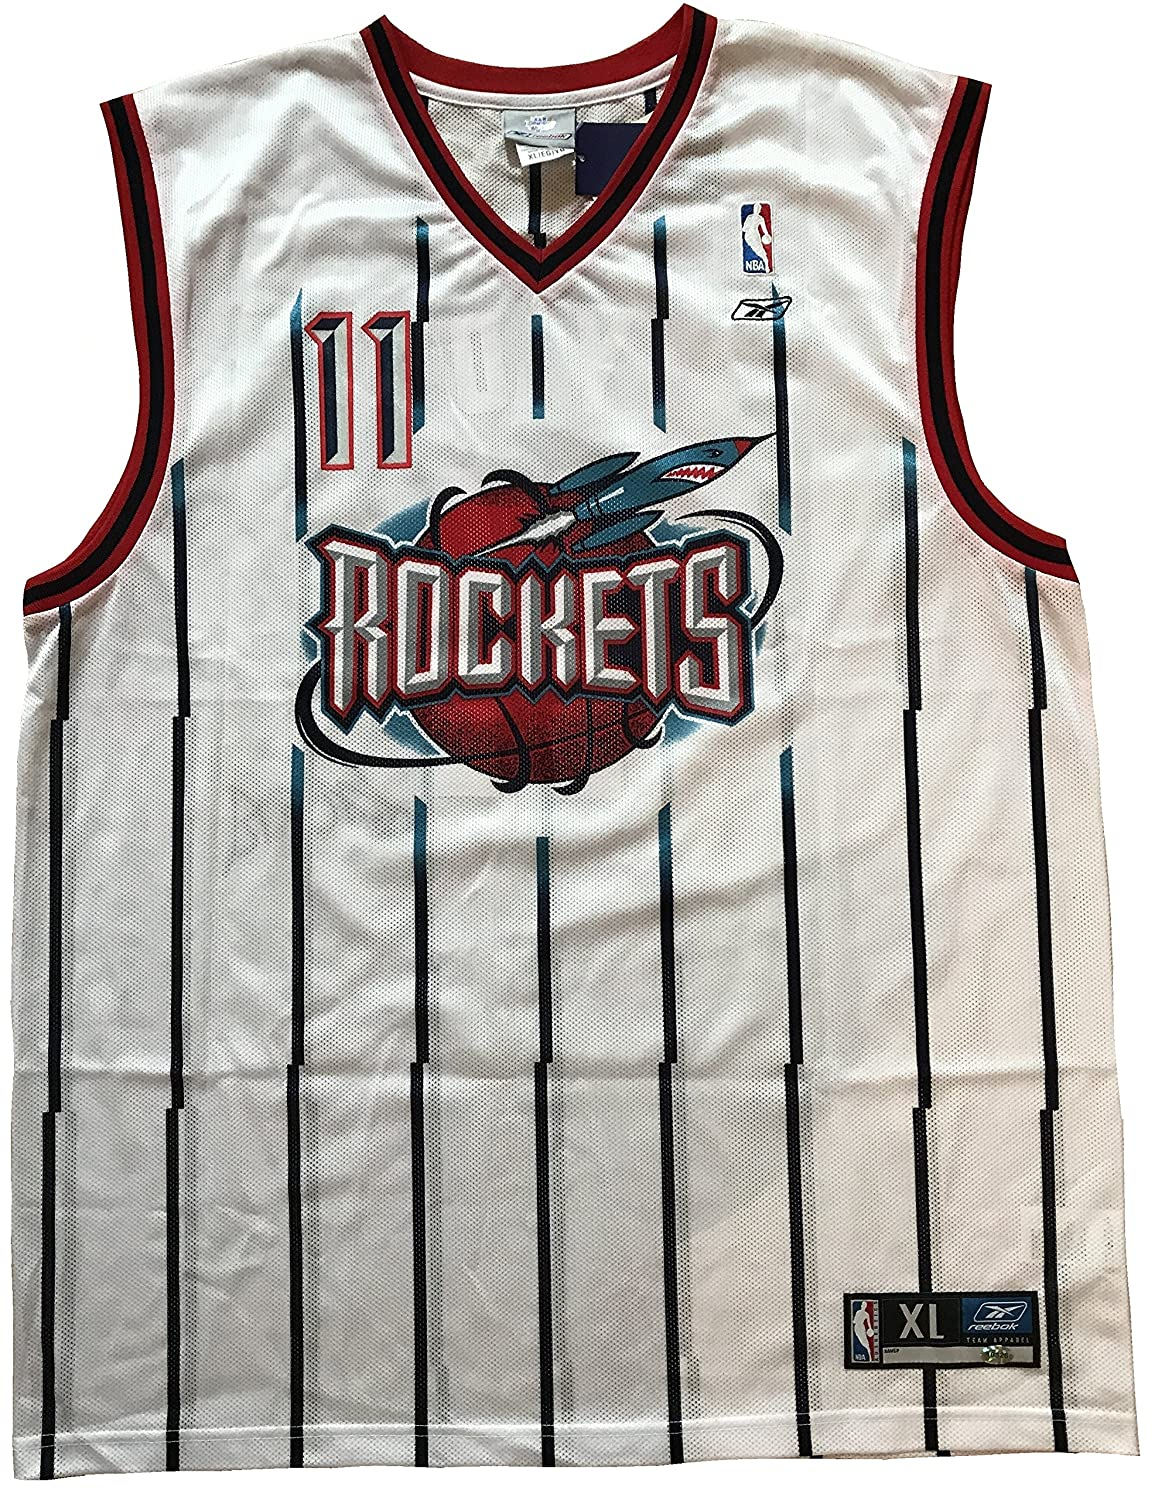 ... Yao Ming AutographedSigned Replica Reebok NBA Houston Rockets Rookie  Jersey at Amazons Sports Collectibles Store ... 00f09d311